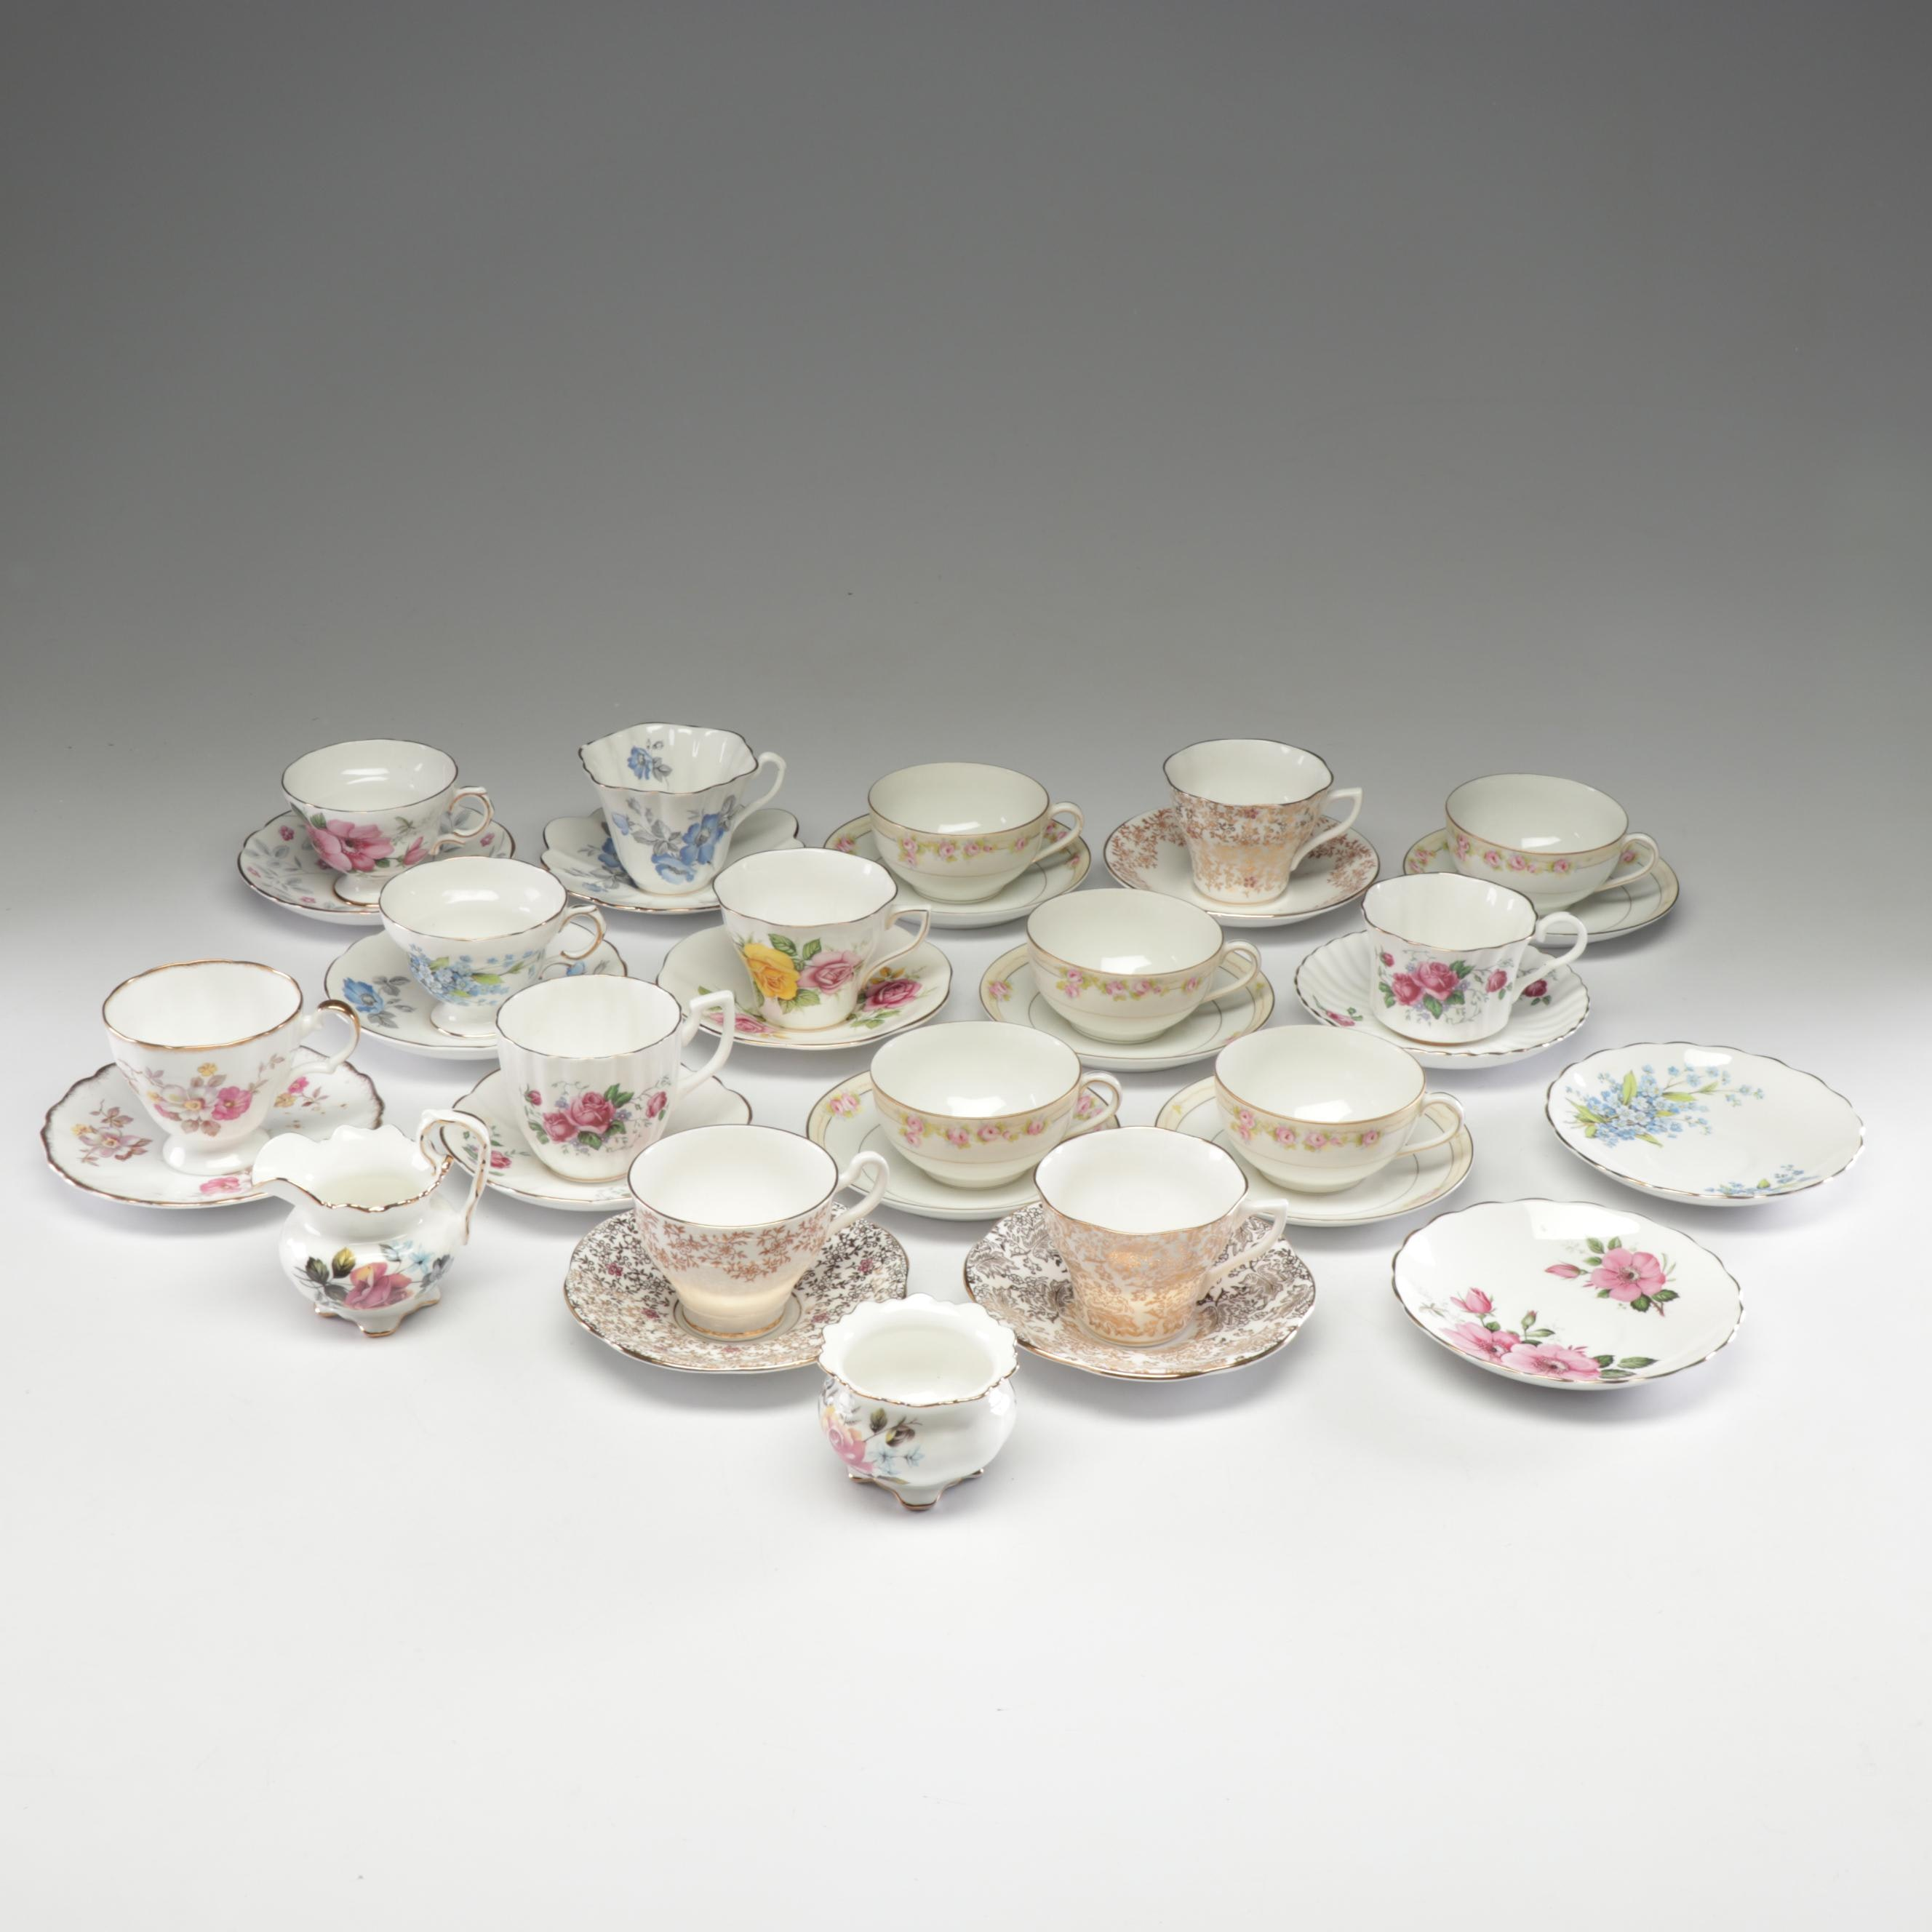 English and Japanese Bone China Teacups and Saucers